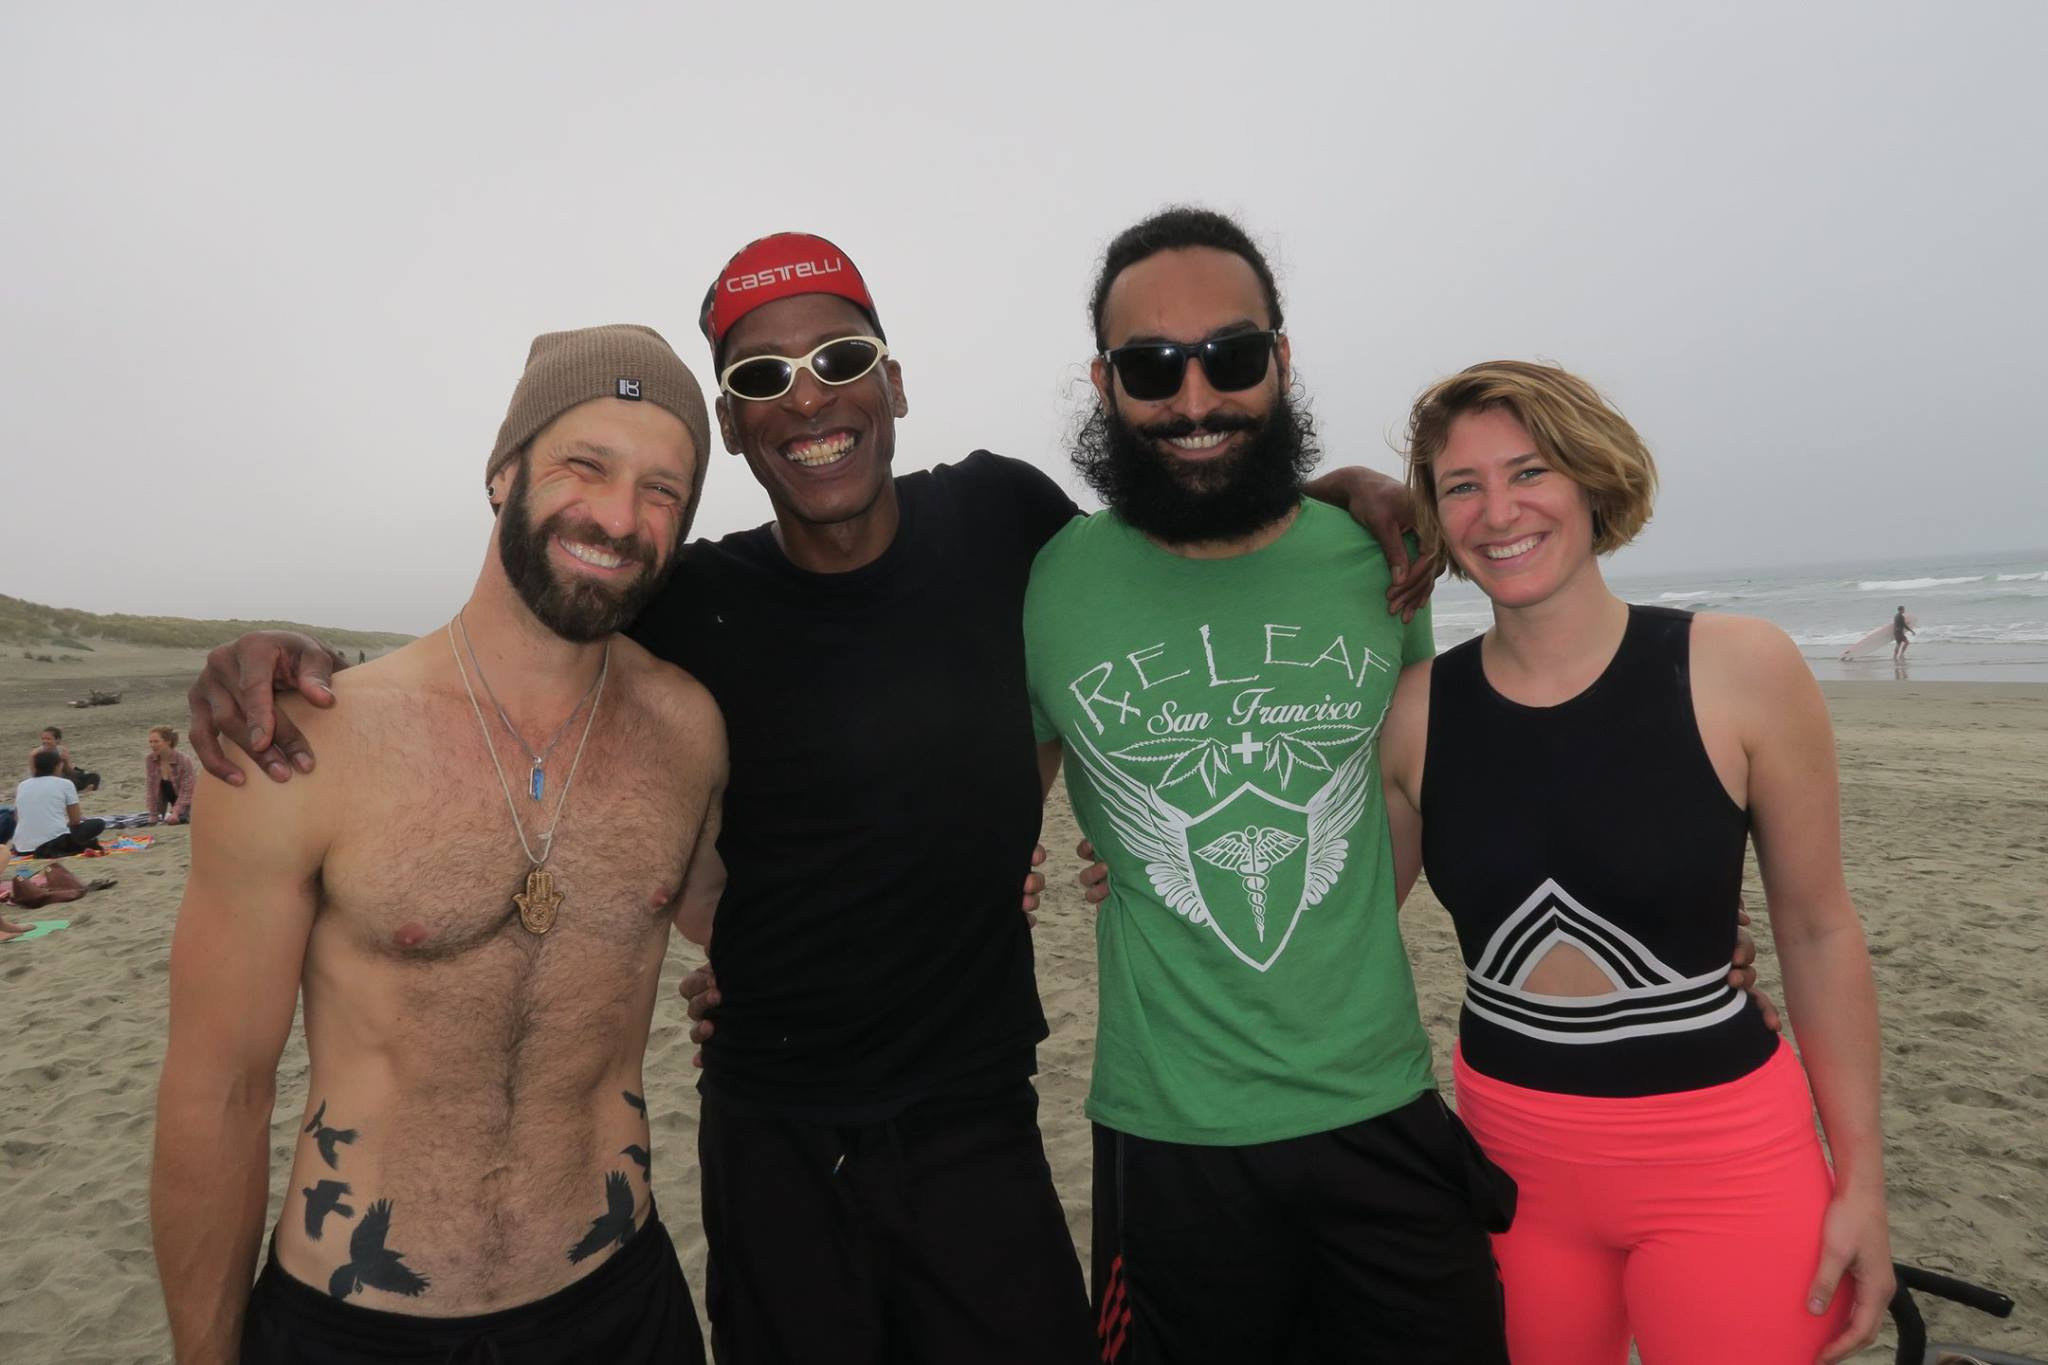 Four Yoga teachers in San francisco